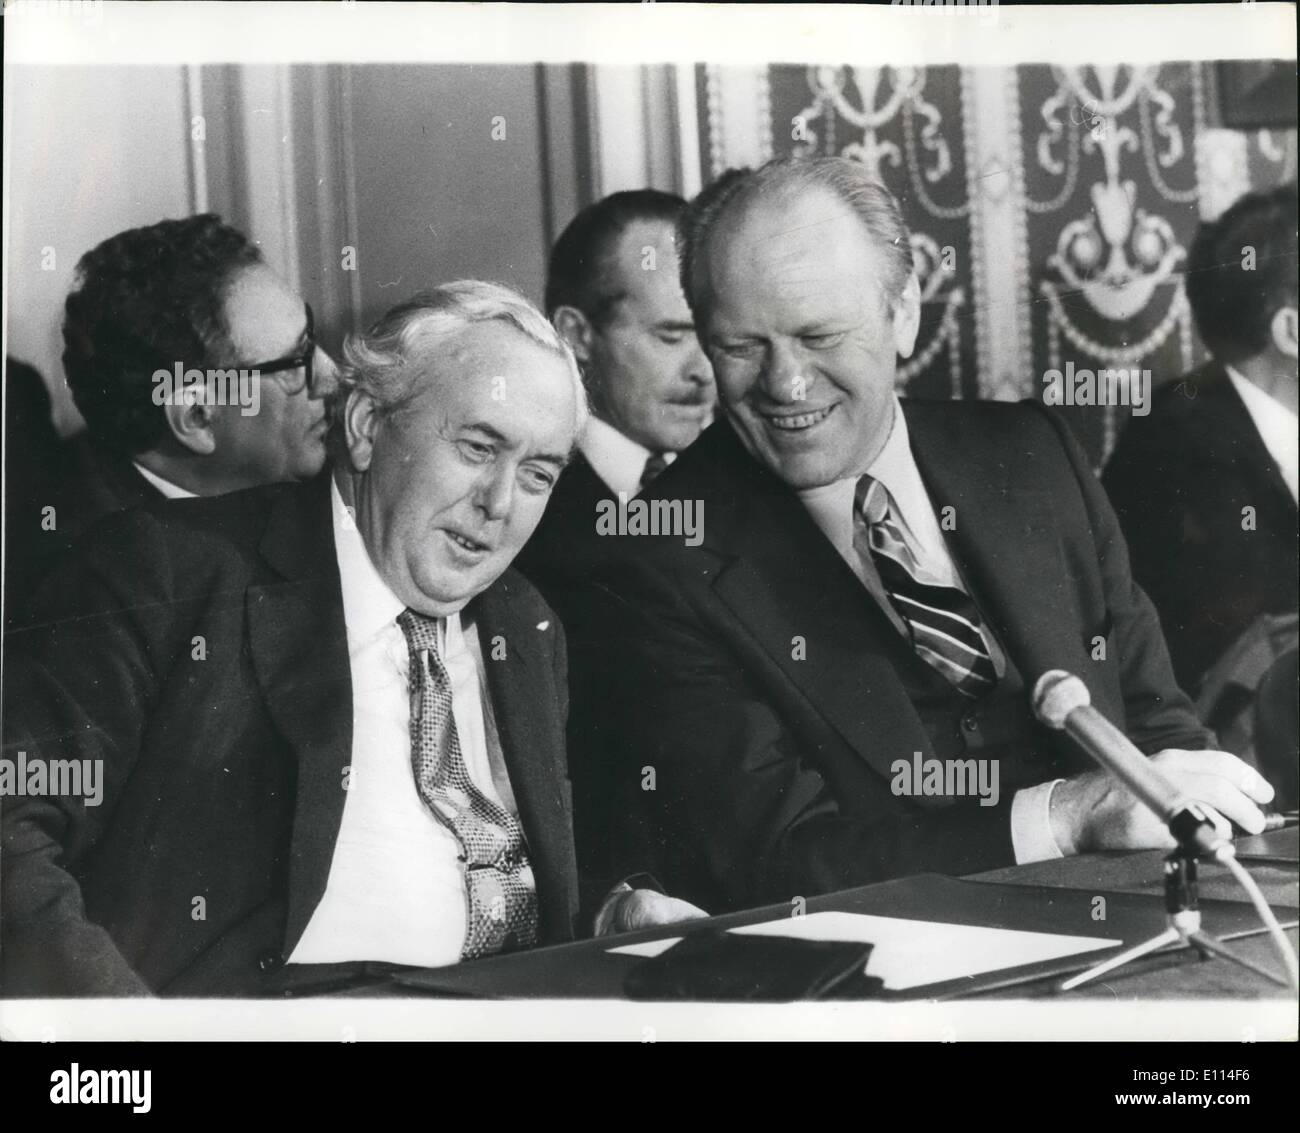 Nov. 11, 1975 - Six Power Conference At Rambouillet The Six Major Industrial countries, Britain, France, Germany, United States, Japan and Italy ended their three-day summit at Rambouillet, near Paris. Photo Shows: Mr. Harold Wilson the British Prime Minister and President Ford during the conference. - Stock Image